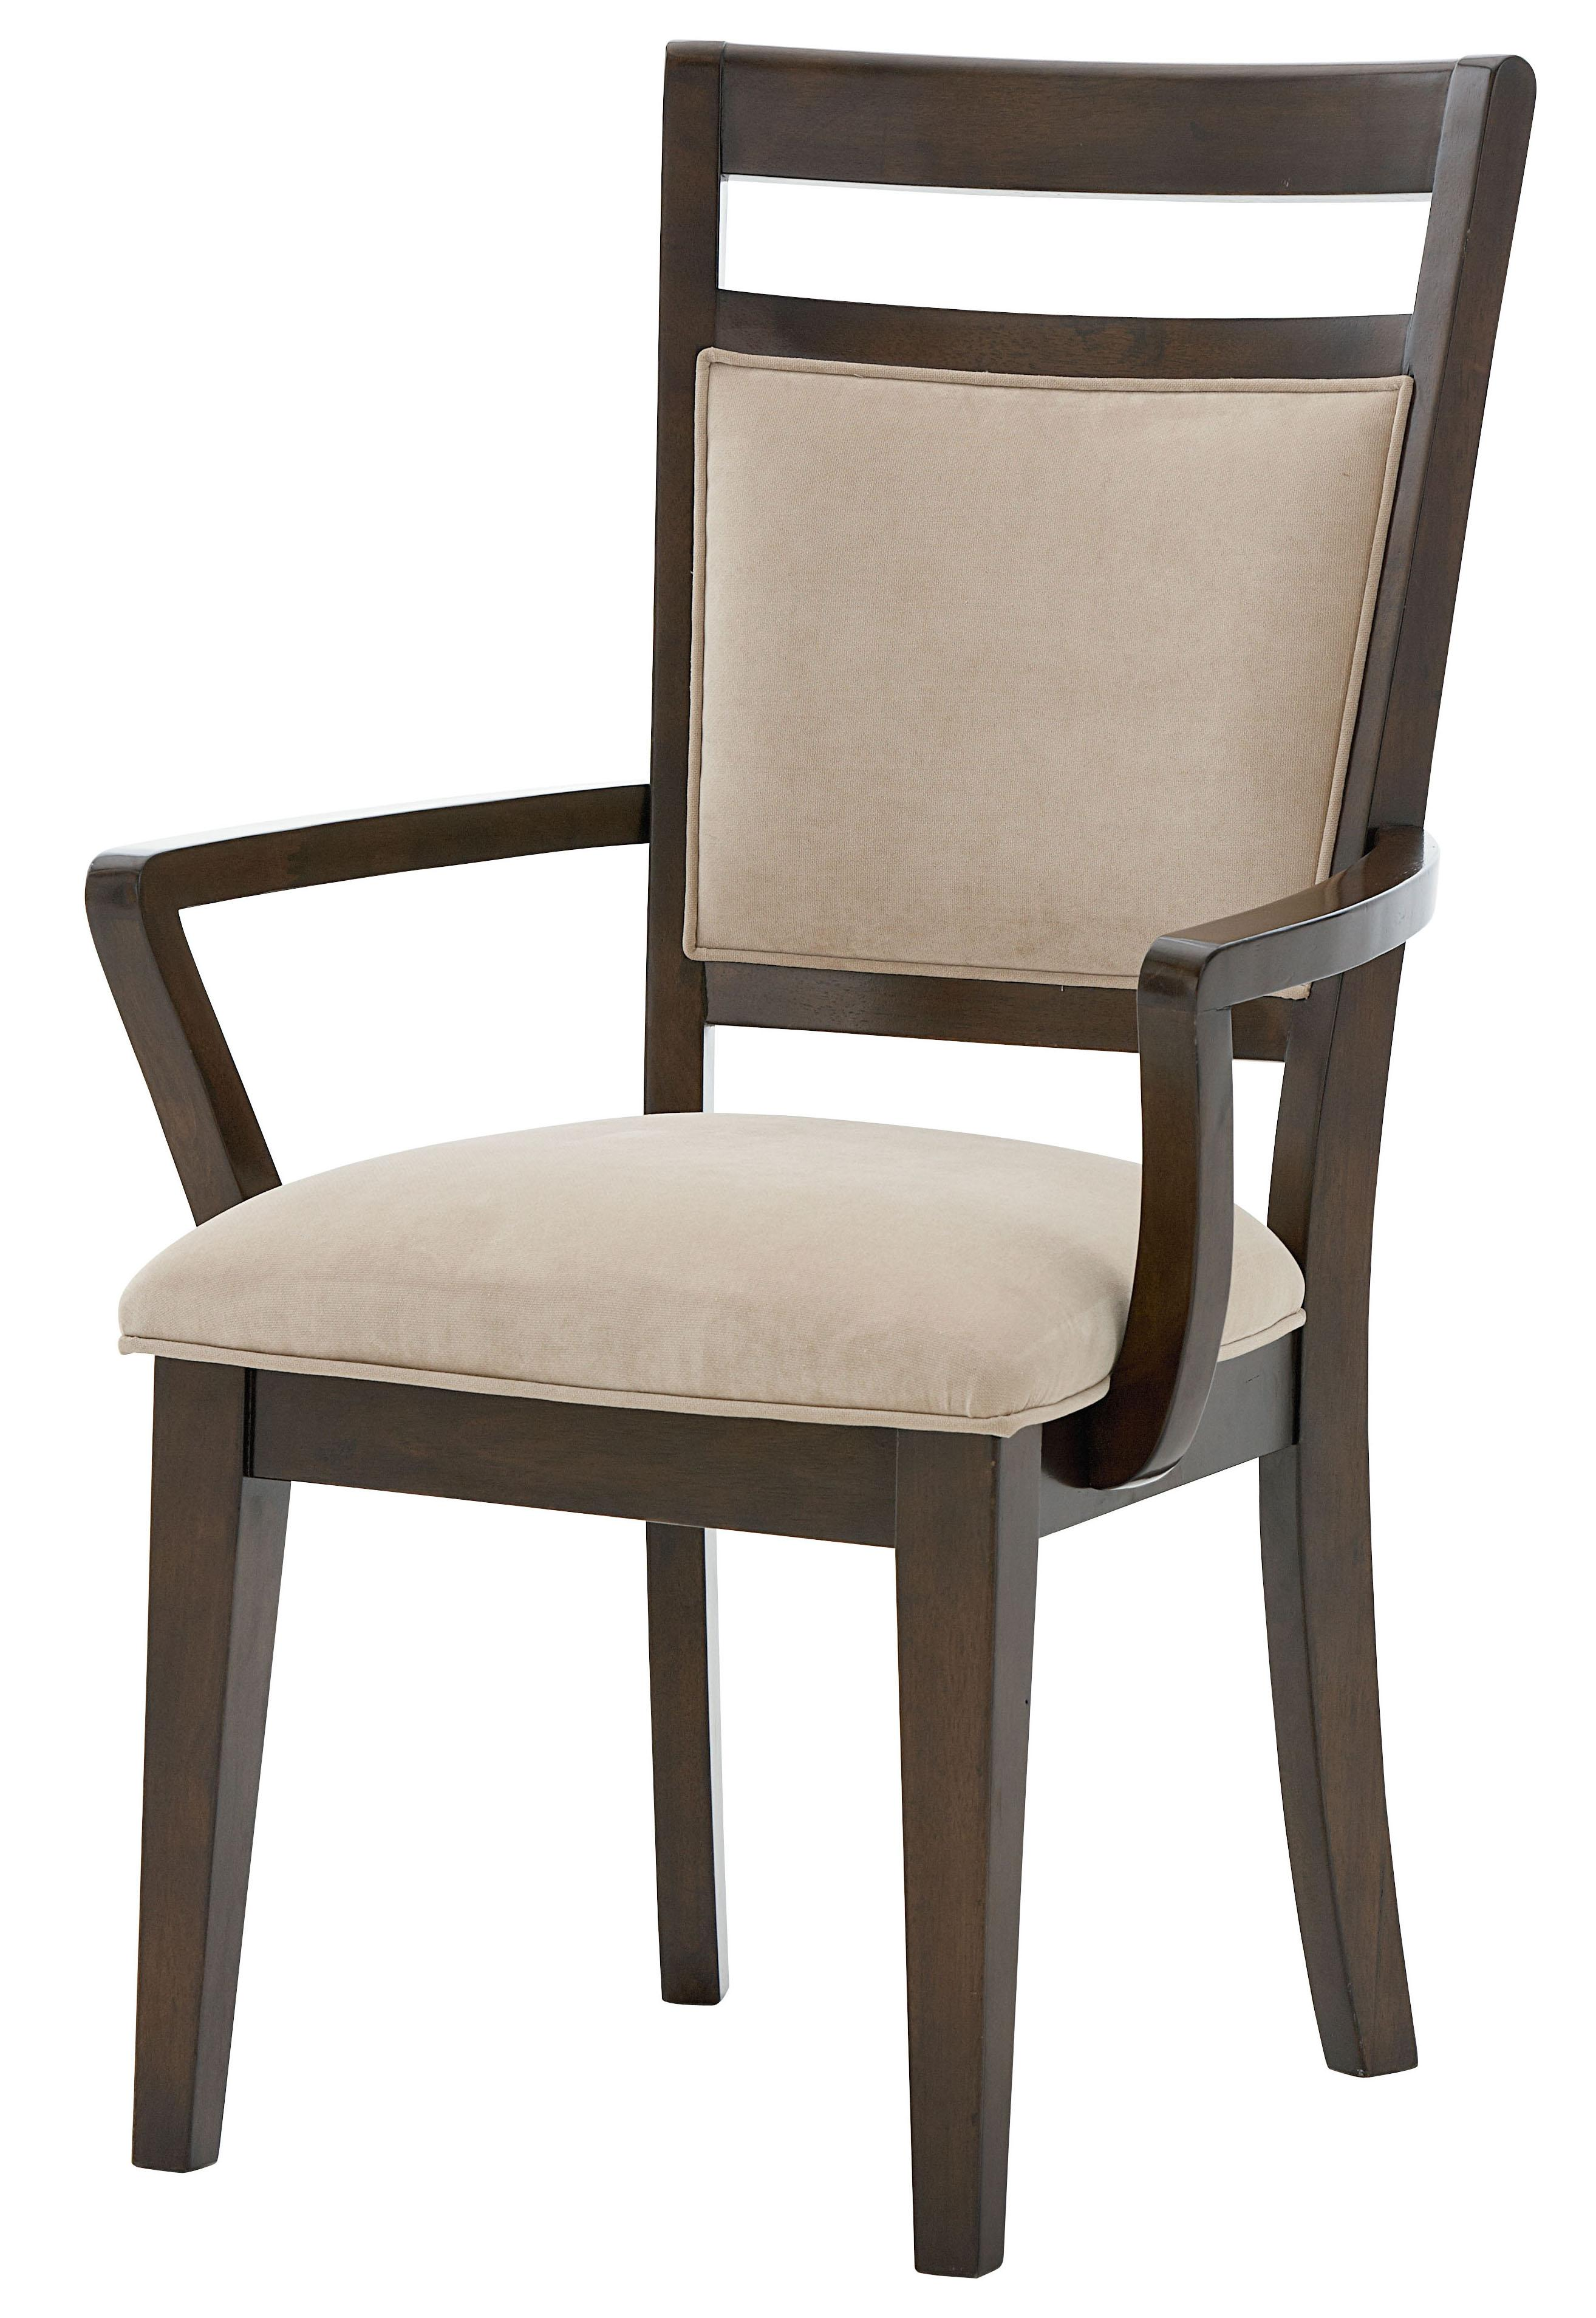 Standard Furniture Avion Arm Chair With Upholstered Seat